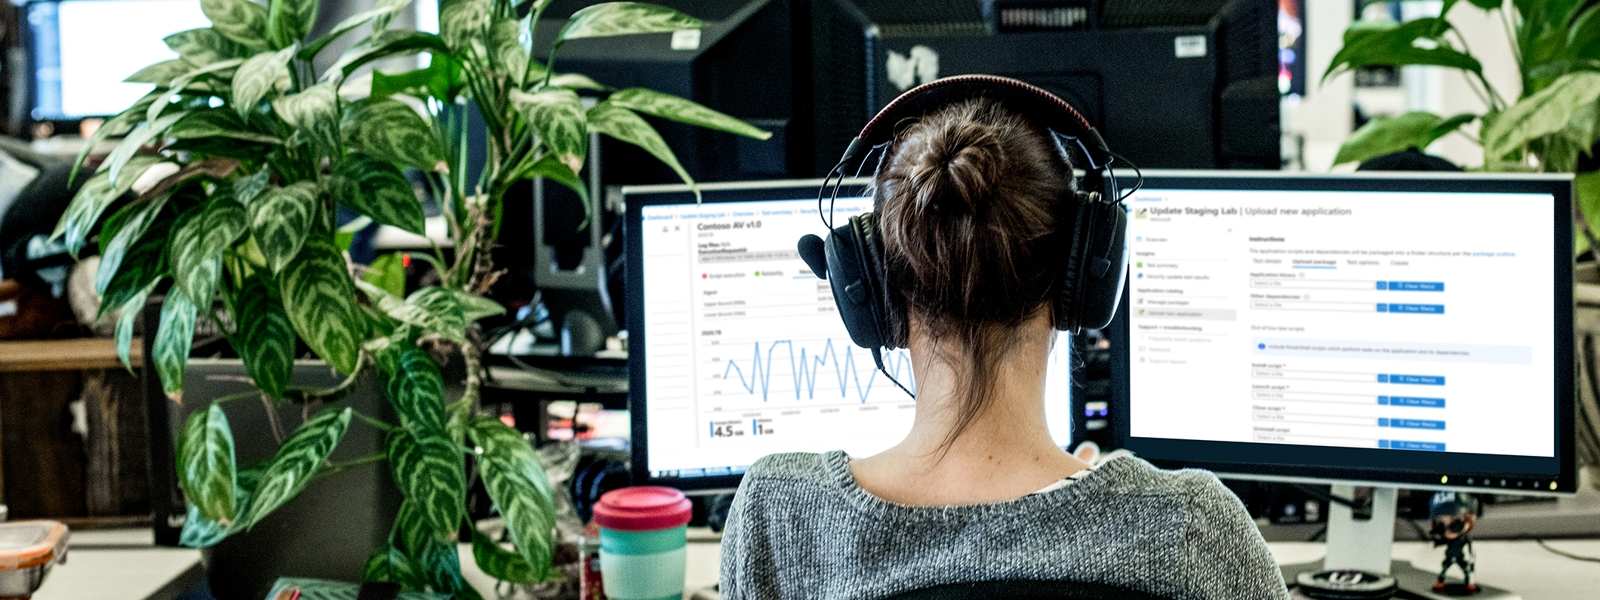 A woman with a headset sitting at her desk in a modern office setting